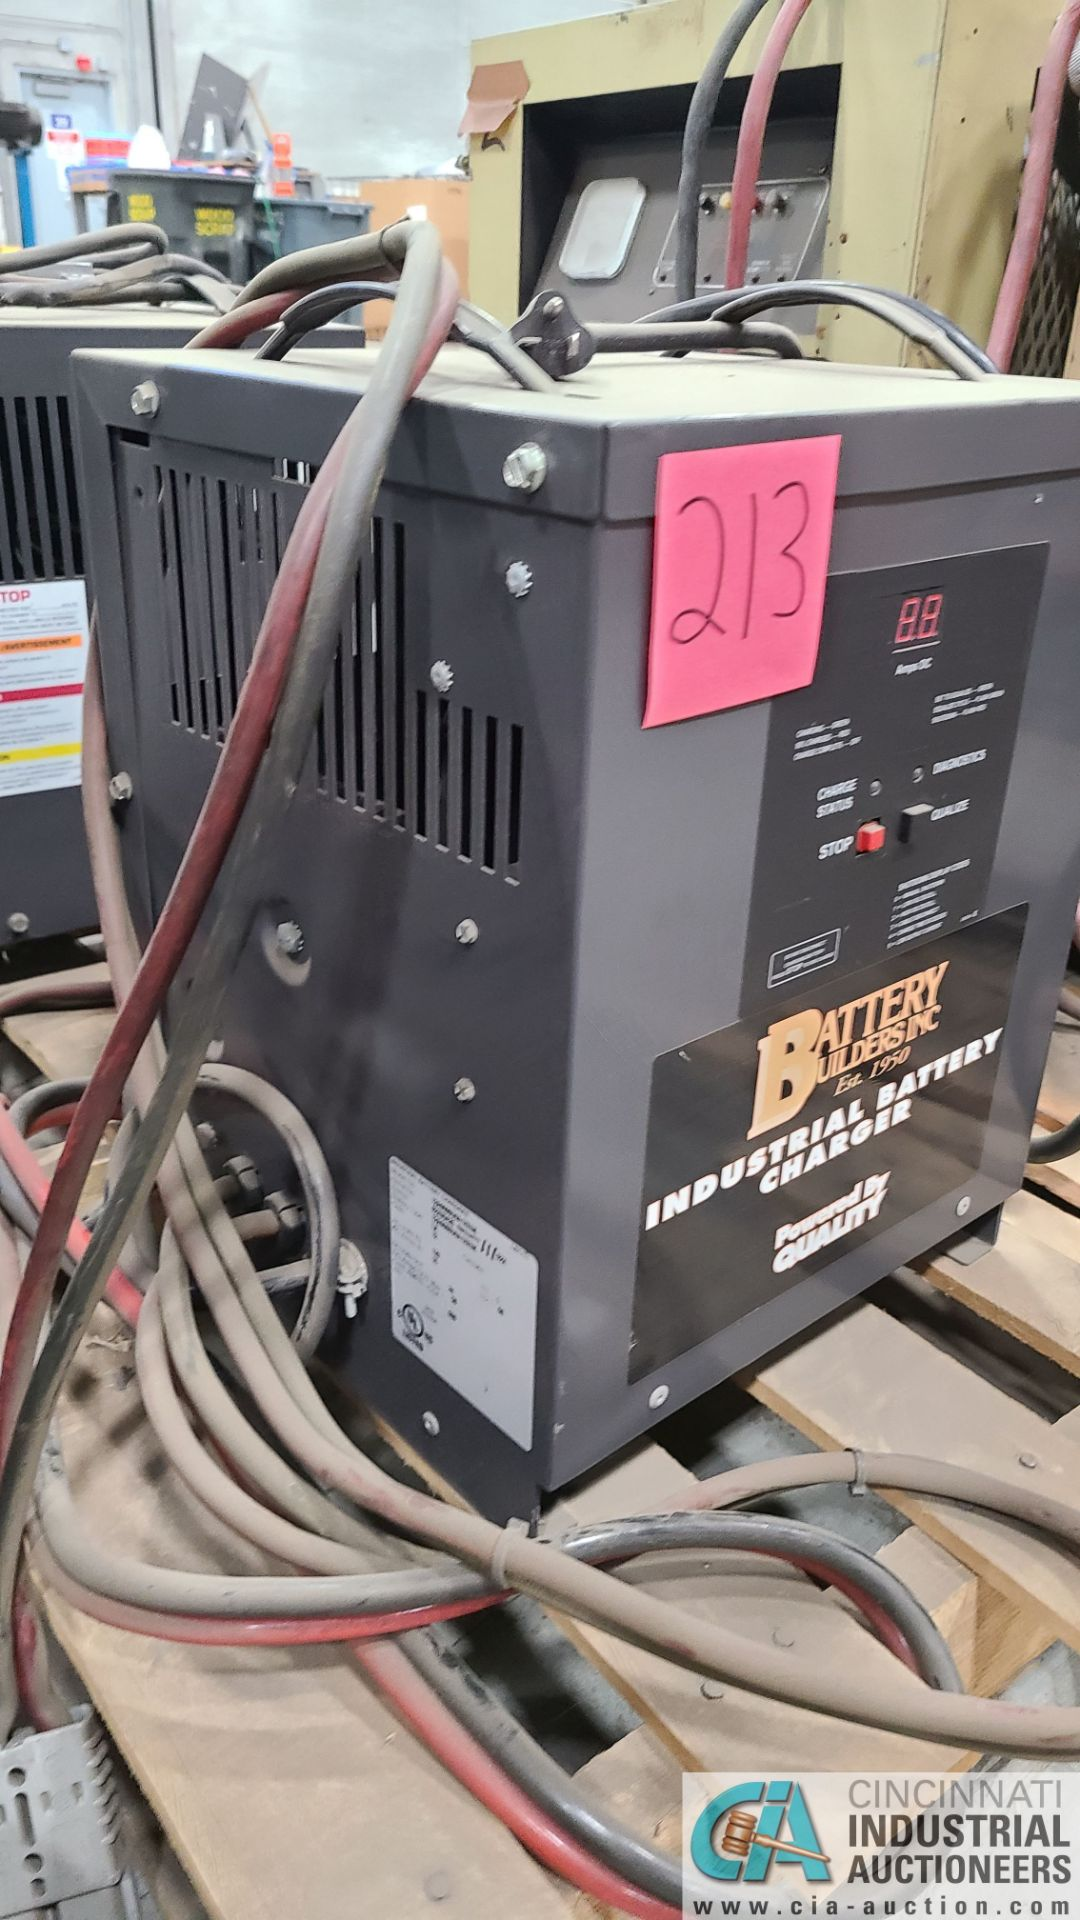 24-VOLT BATTERY BUILDERS MODEL 12A6060000A1ZEUK BATTERY CHARGER; S/N 02X9426-111 (2570 ORCHARD - Image 2 of 4